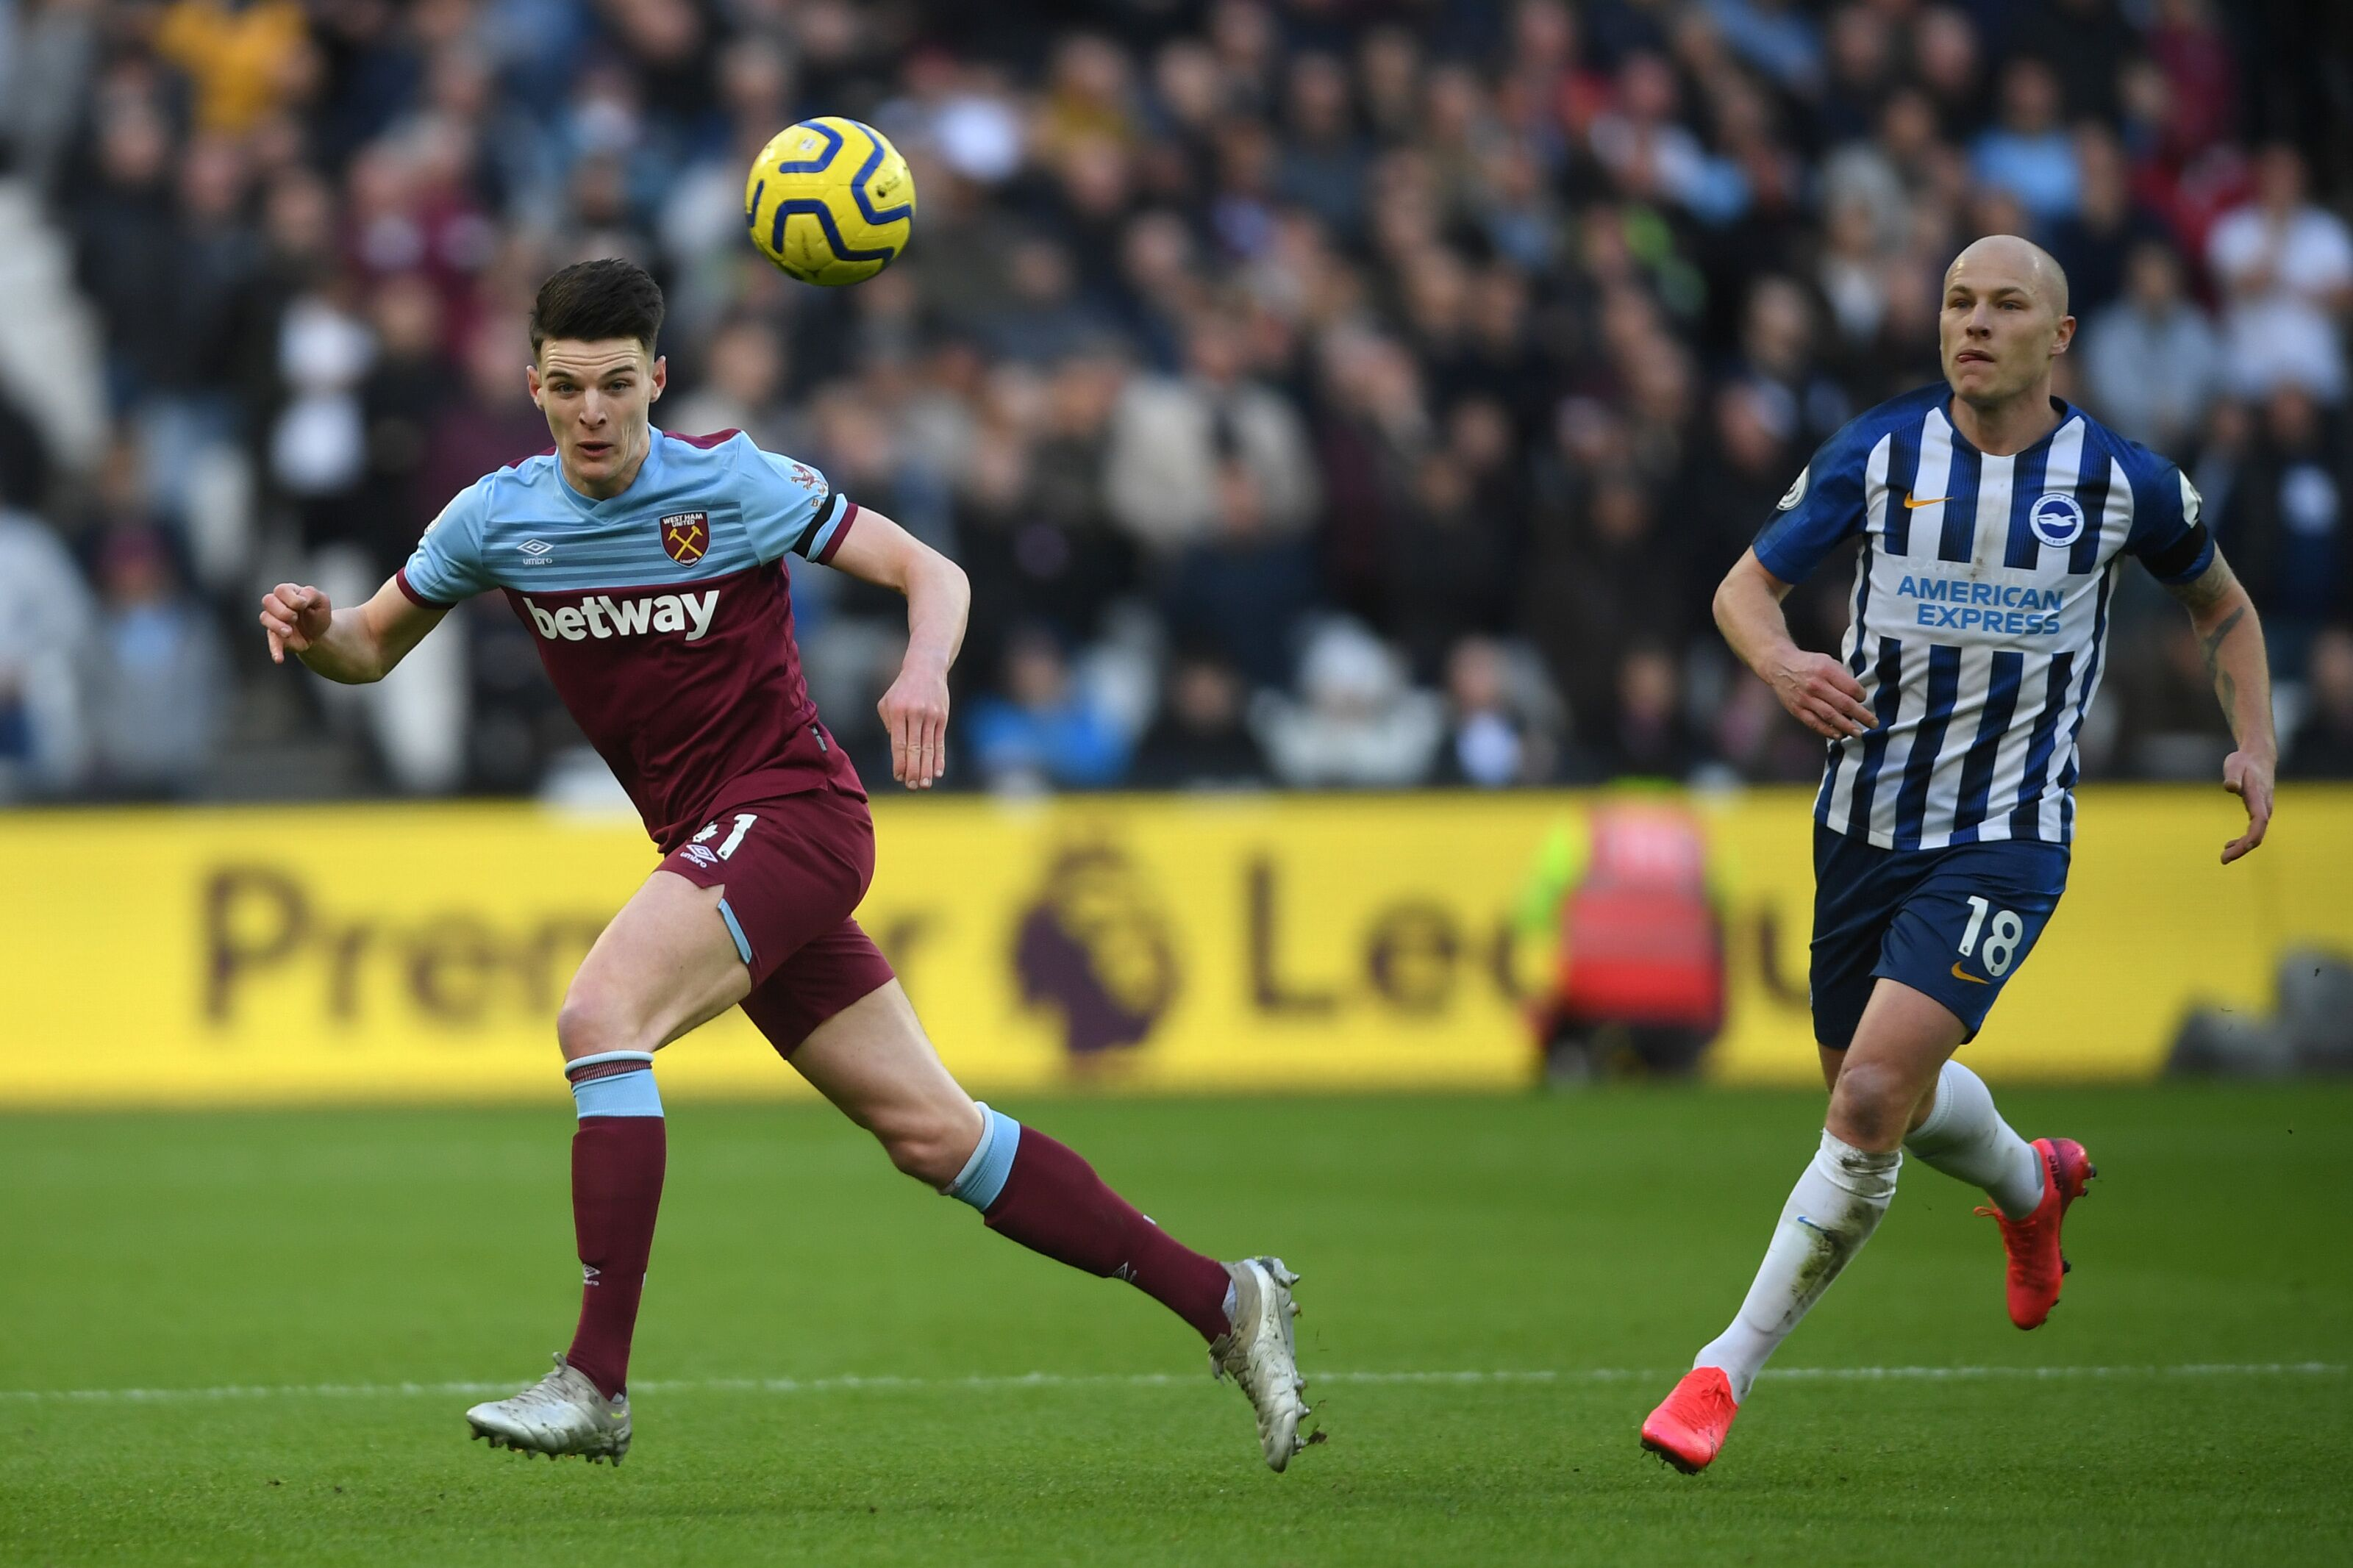 West Ham: Keeping Declan Rice has to be the #1 Priority this summer